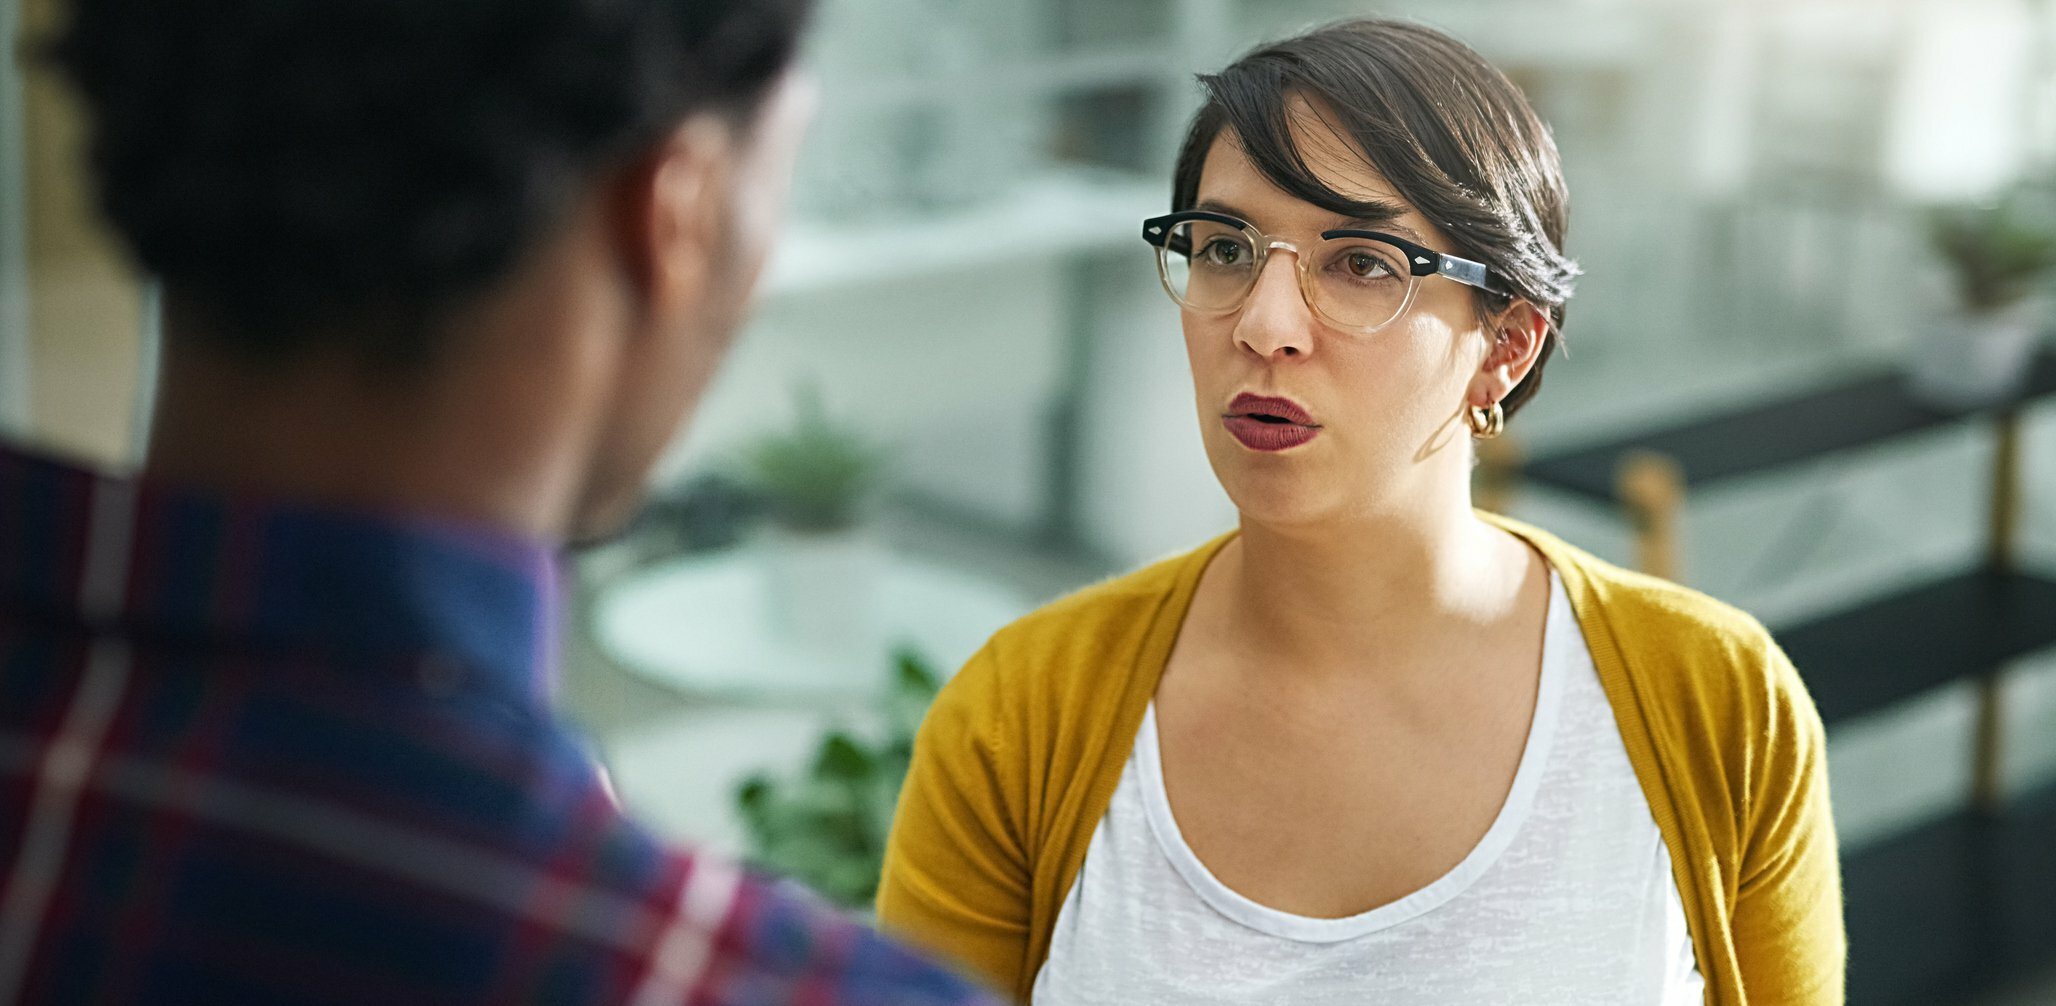 A Realistic Approach to Dealing With People Who Don't Like You